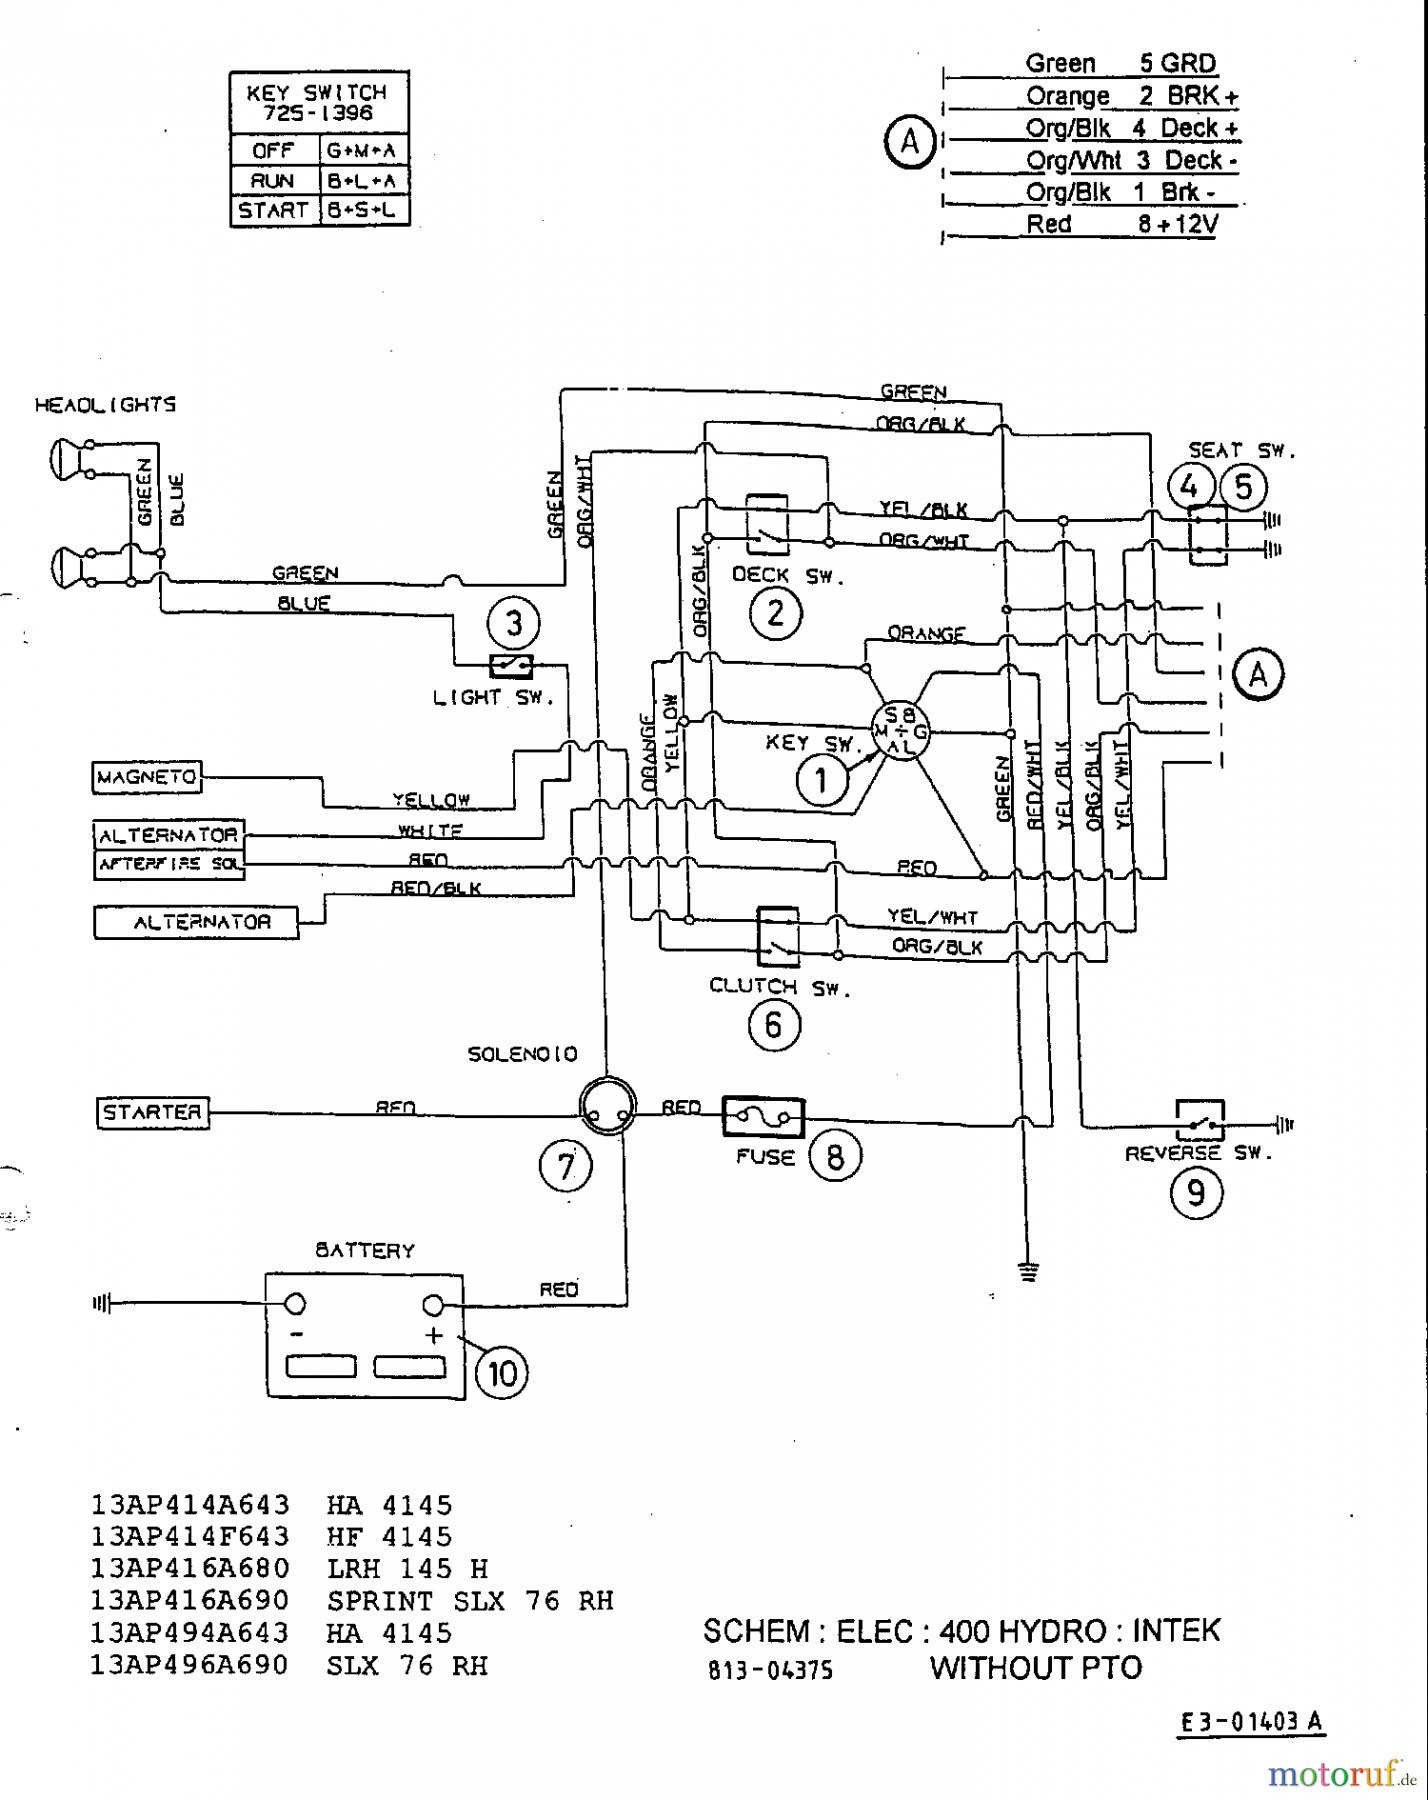 hight resolution of mtd fuses diagram electrical wiring diagram mtd fuses diagram